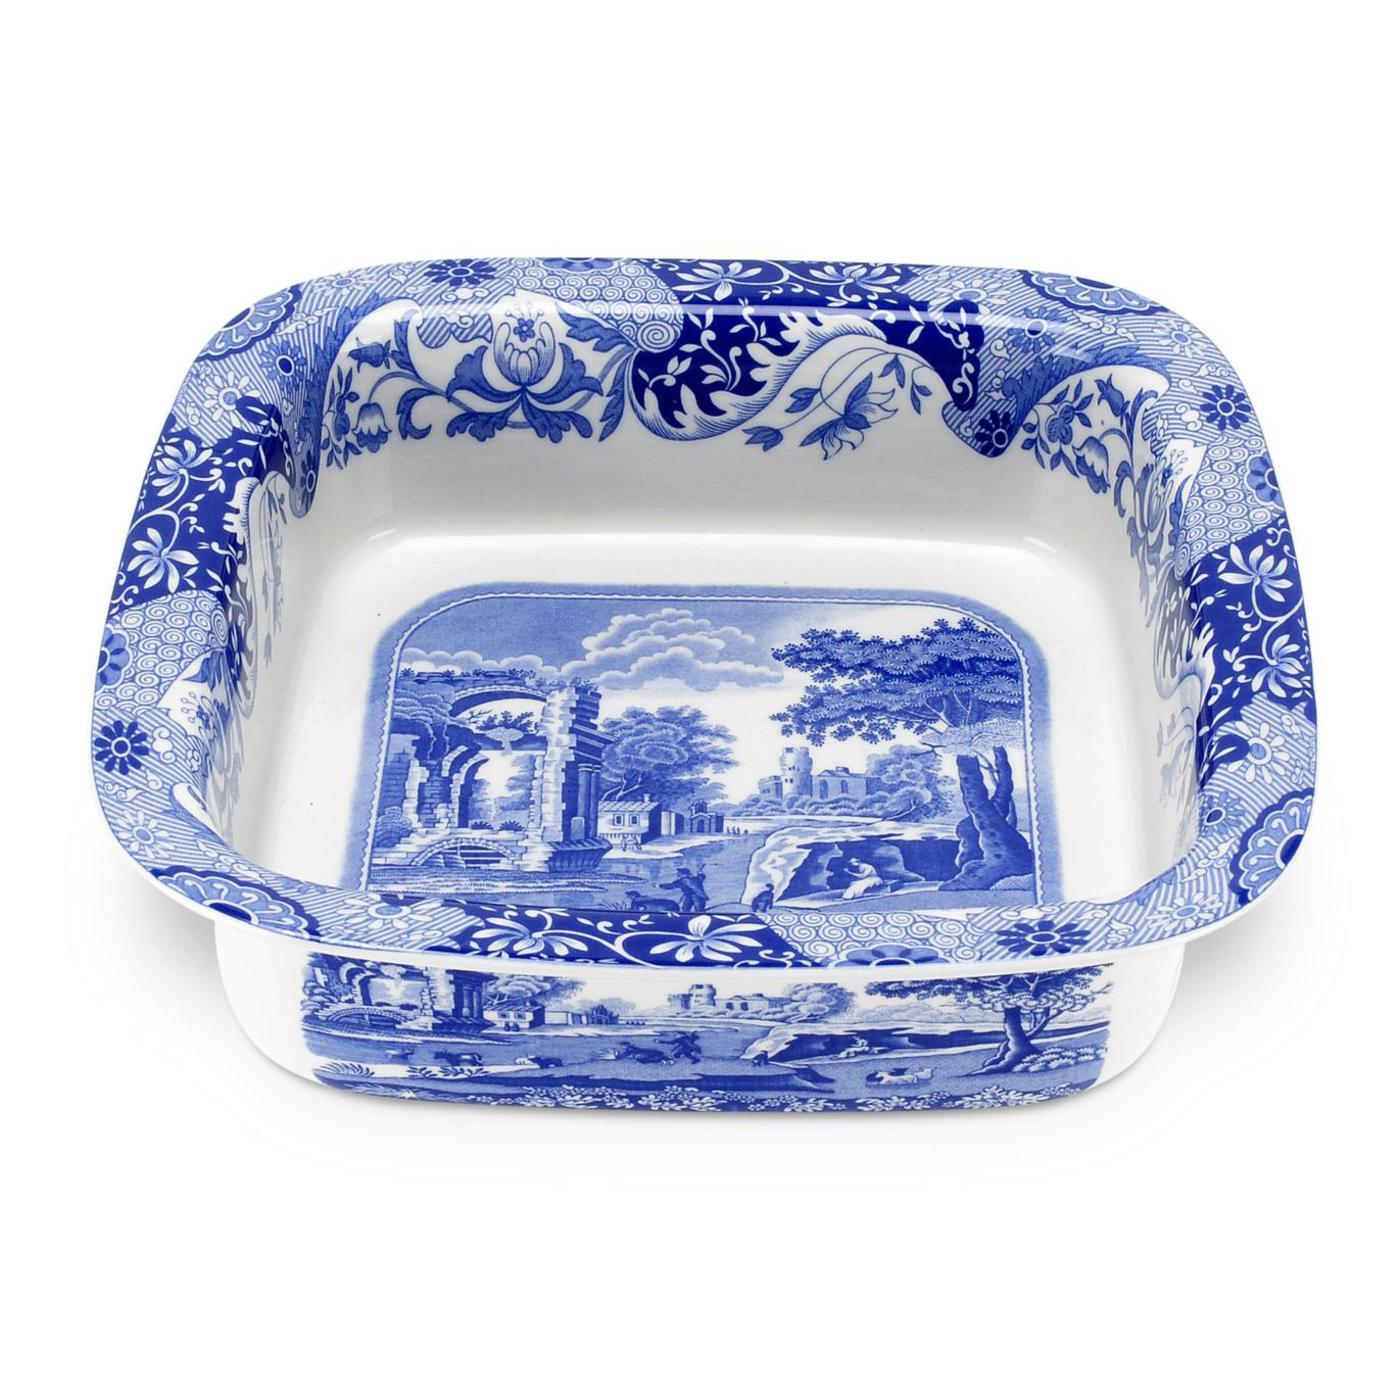 Spode Blue Italian Square Dish image number 0